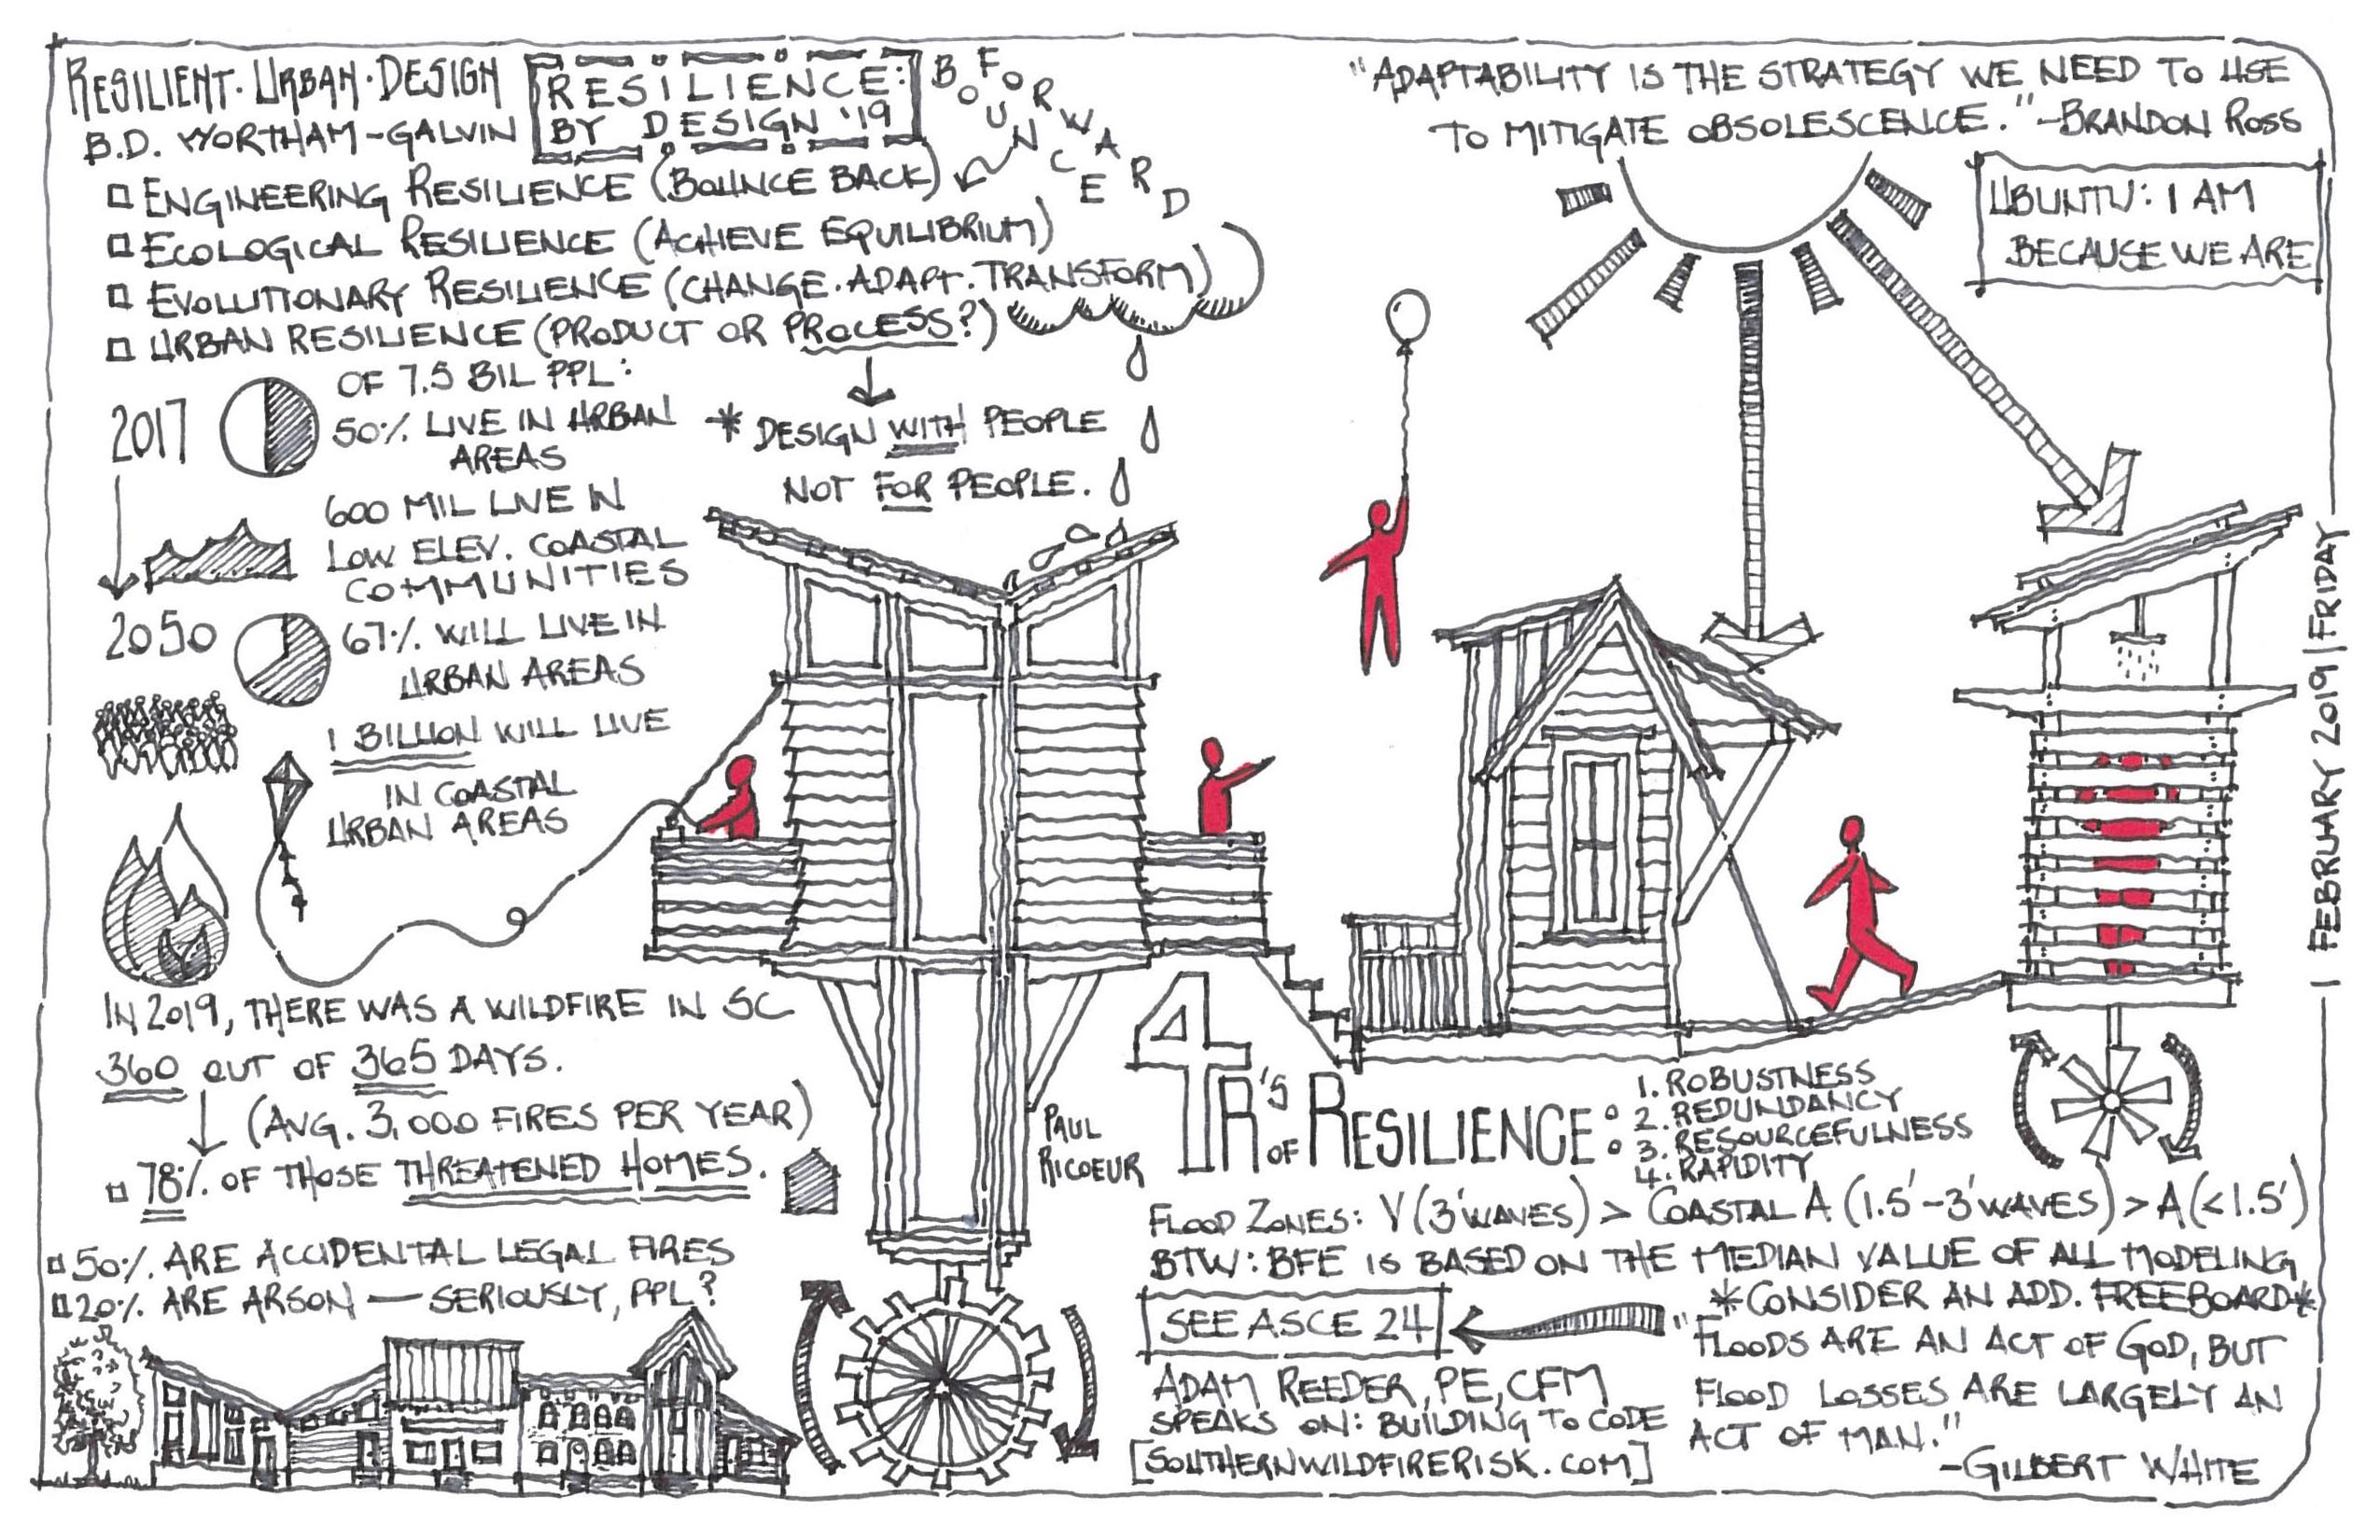 Resilience: By Design Conference